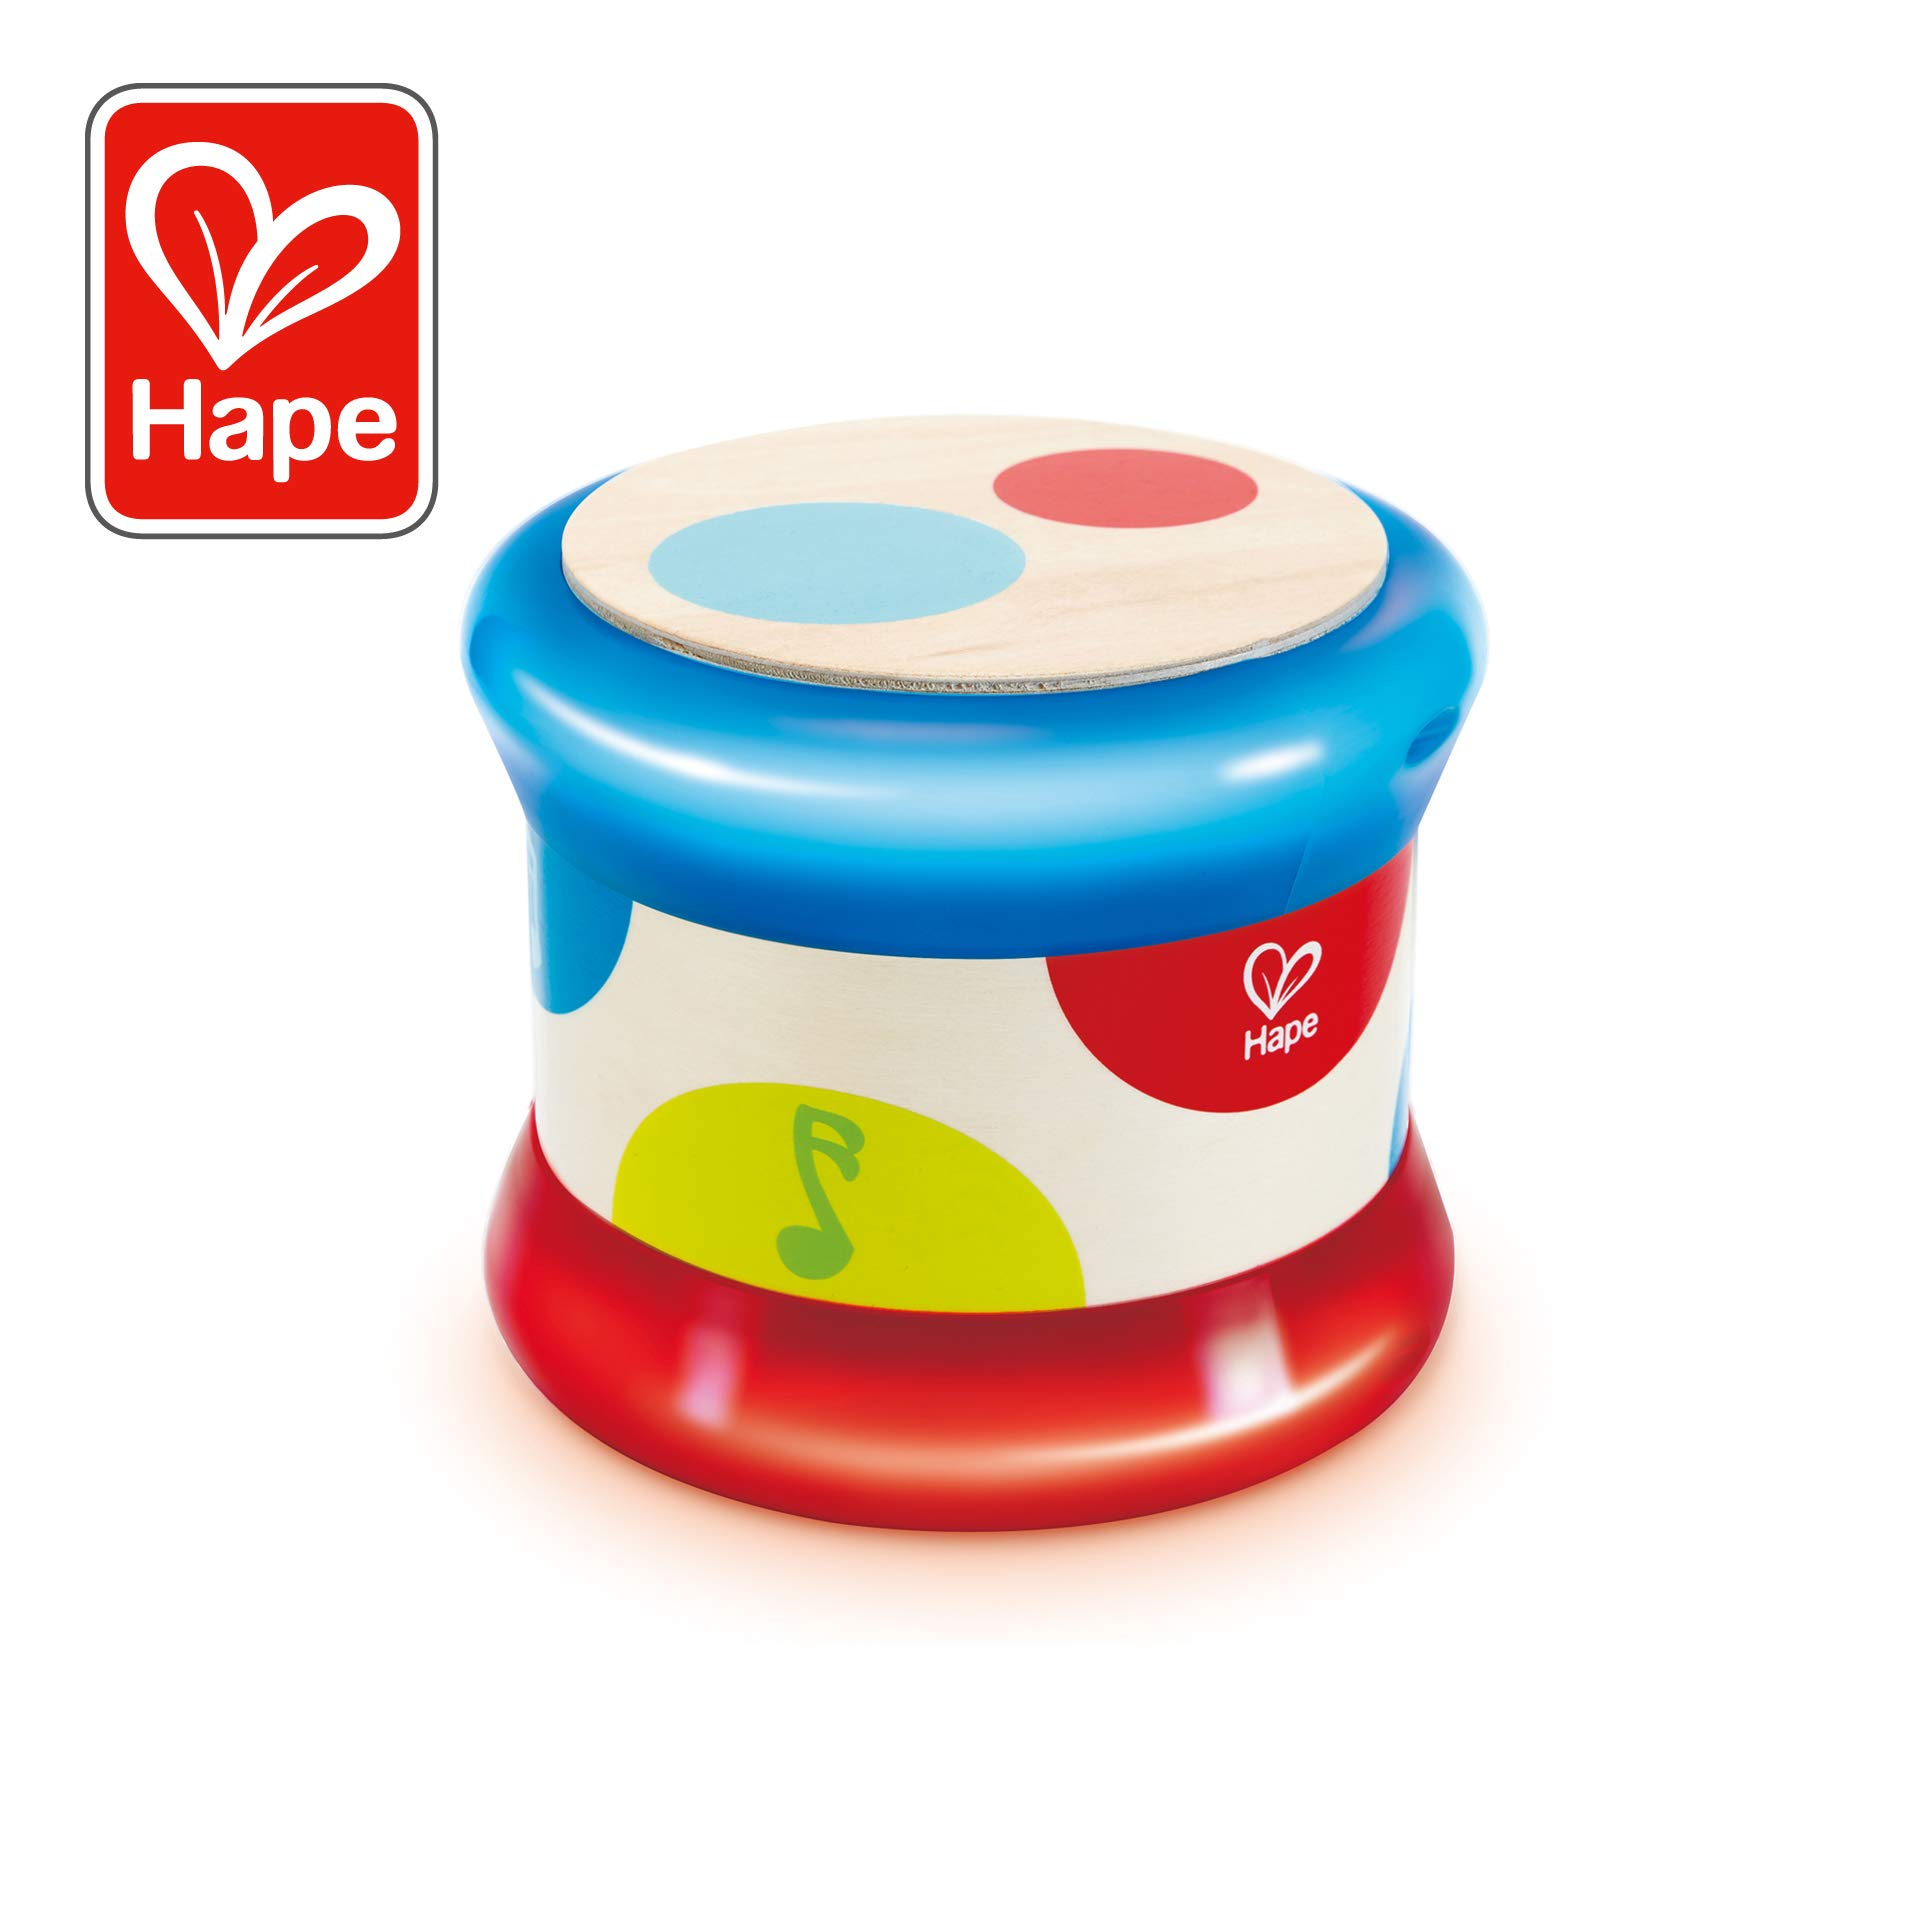 Hape Baby Drum   Colorful Rolling Drum Musical Instrument Toy for Toddlers, Rhythm & Sound Learning, Battery Powered